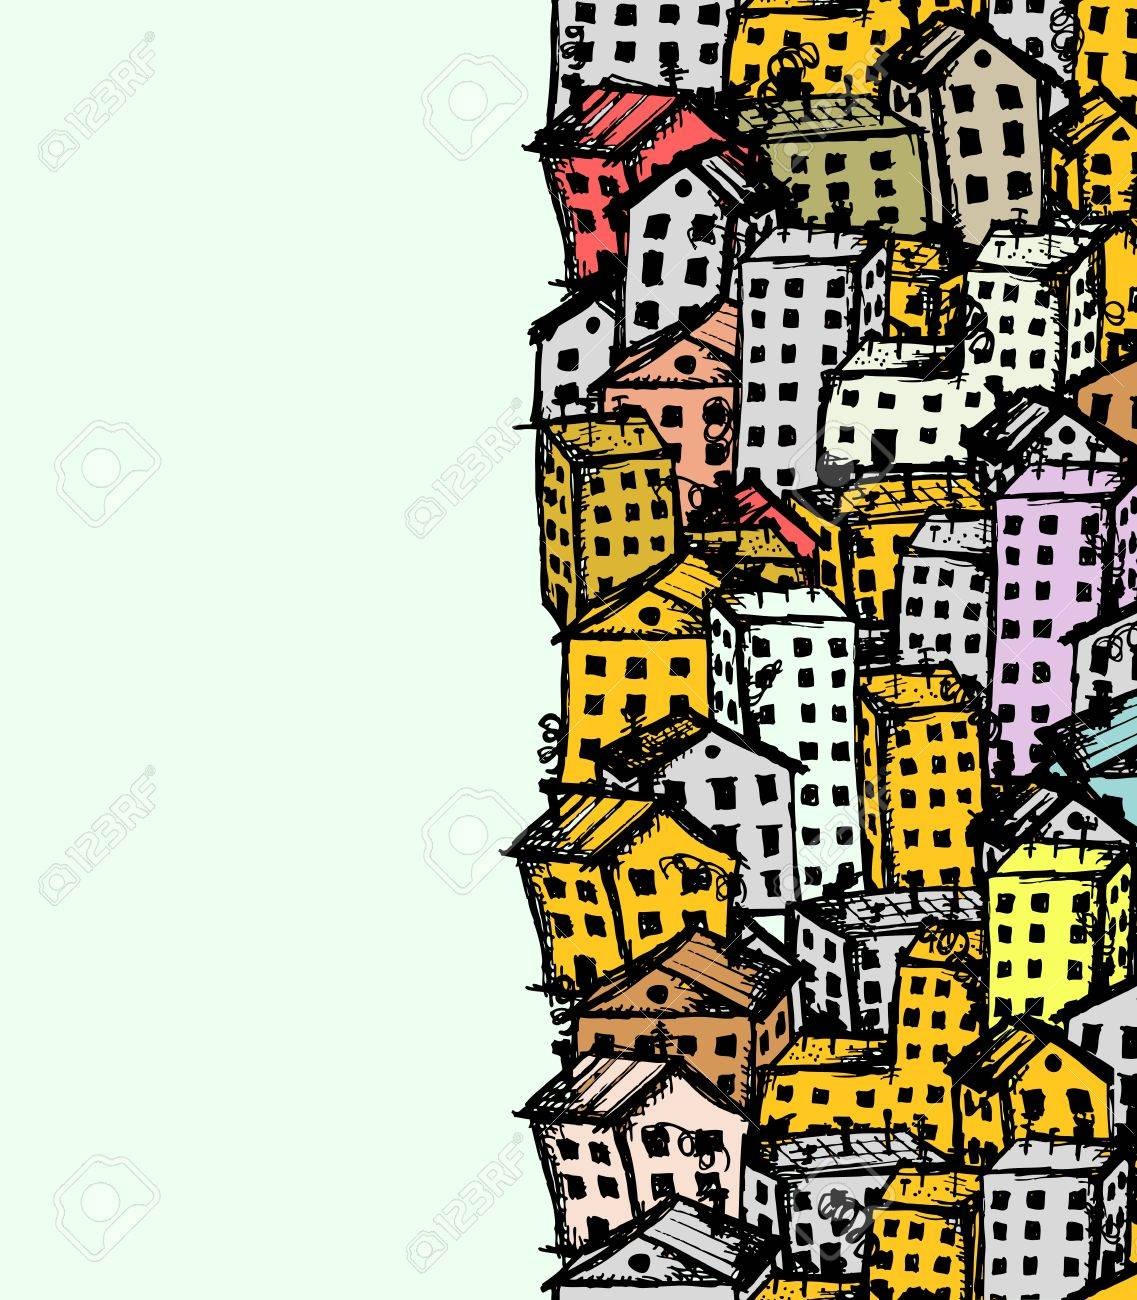 City sketch, seamless background for your design Stock Vector - 12397302